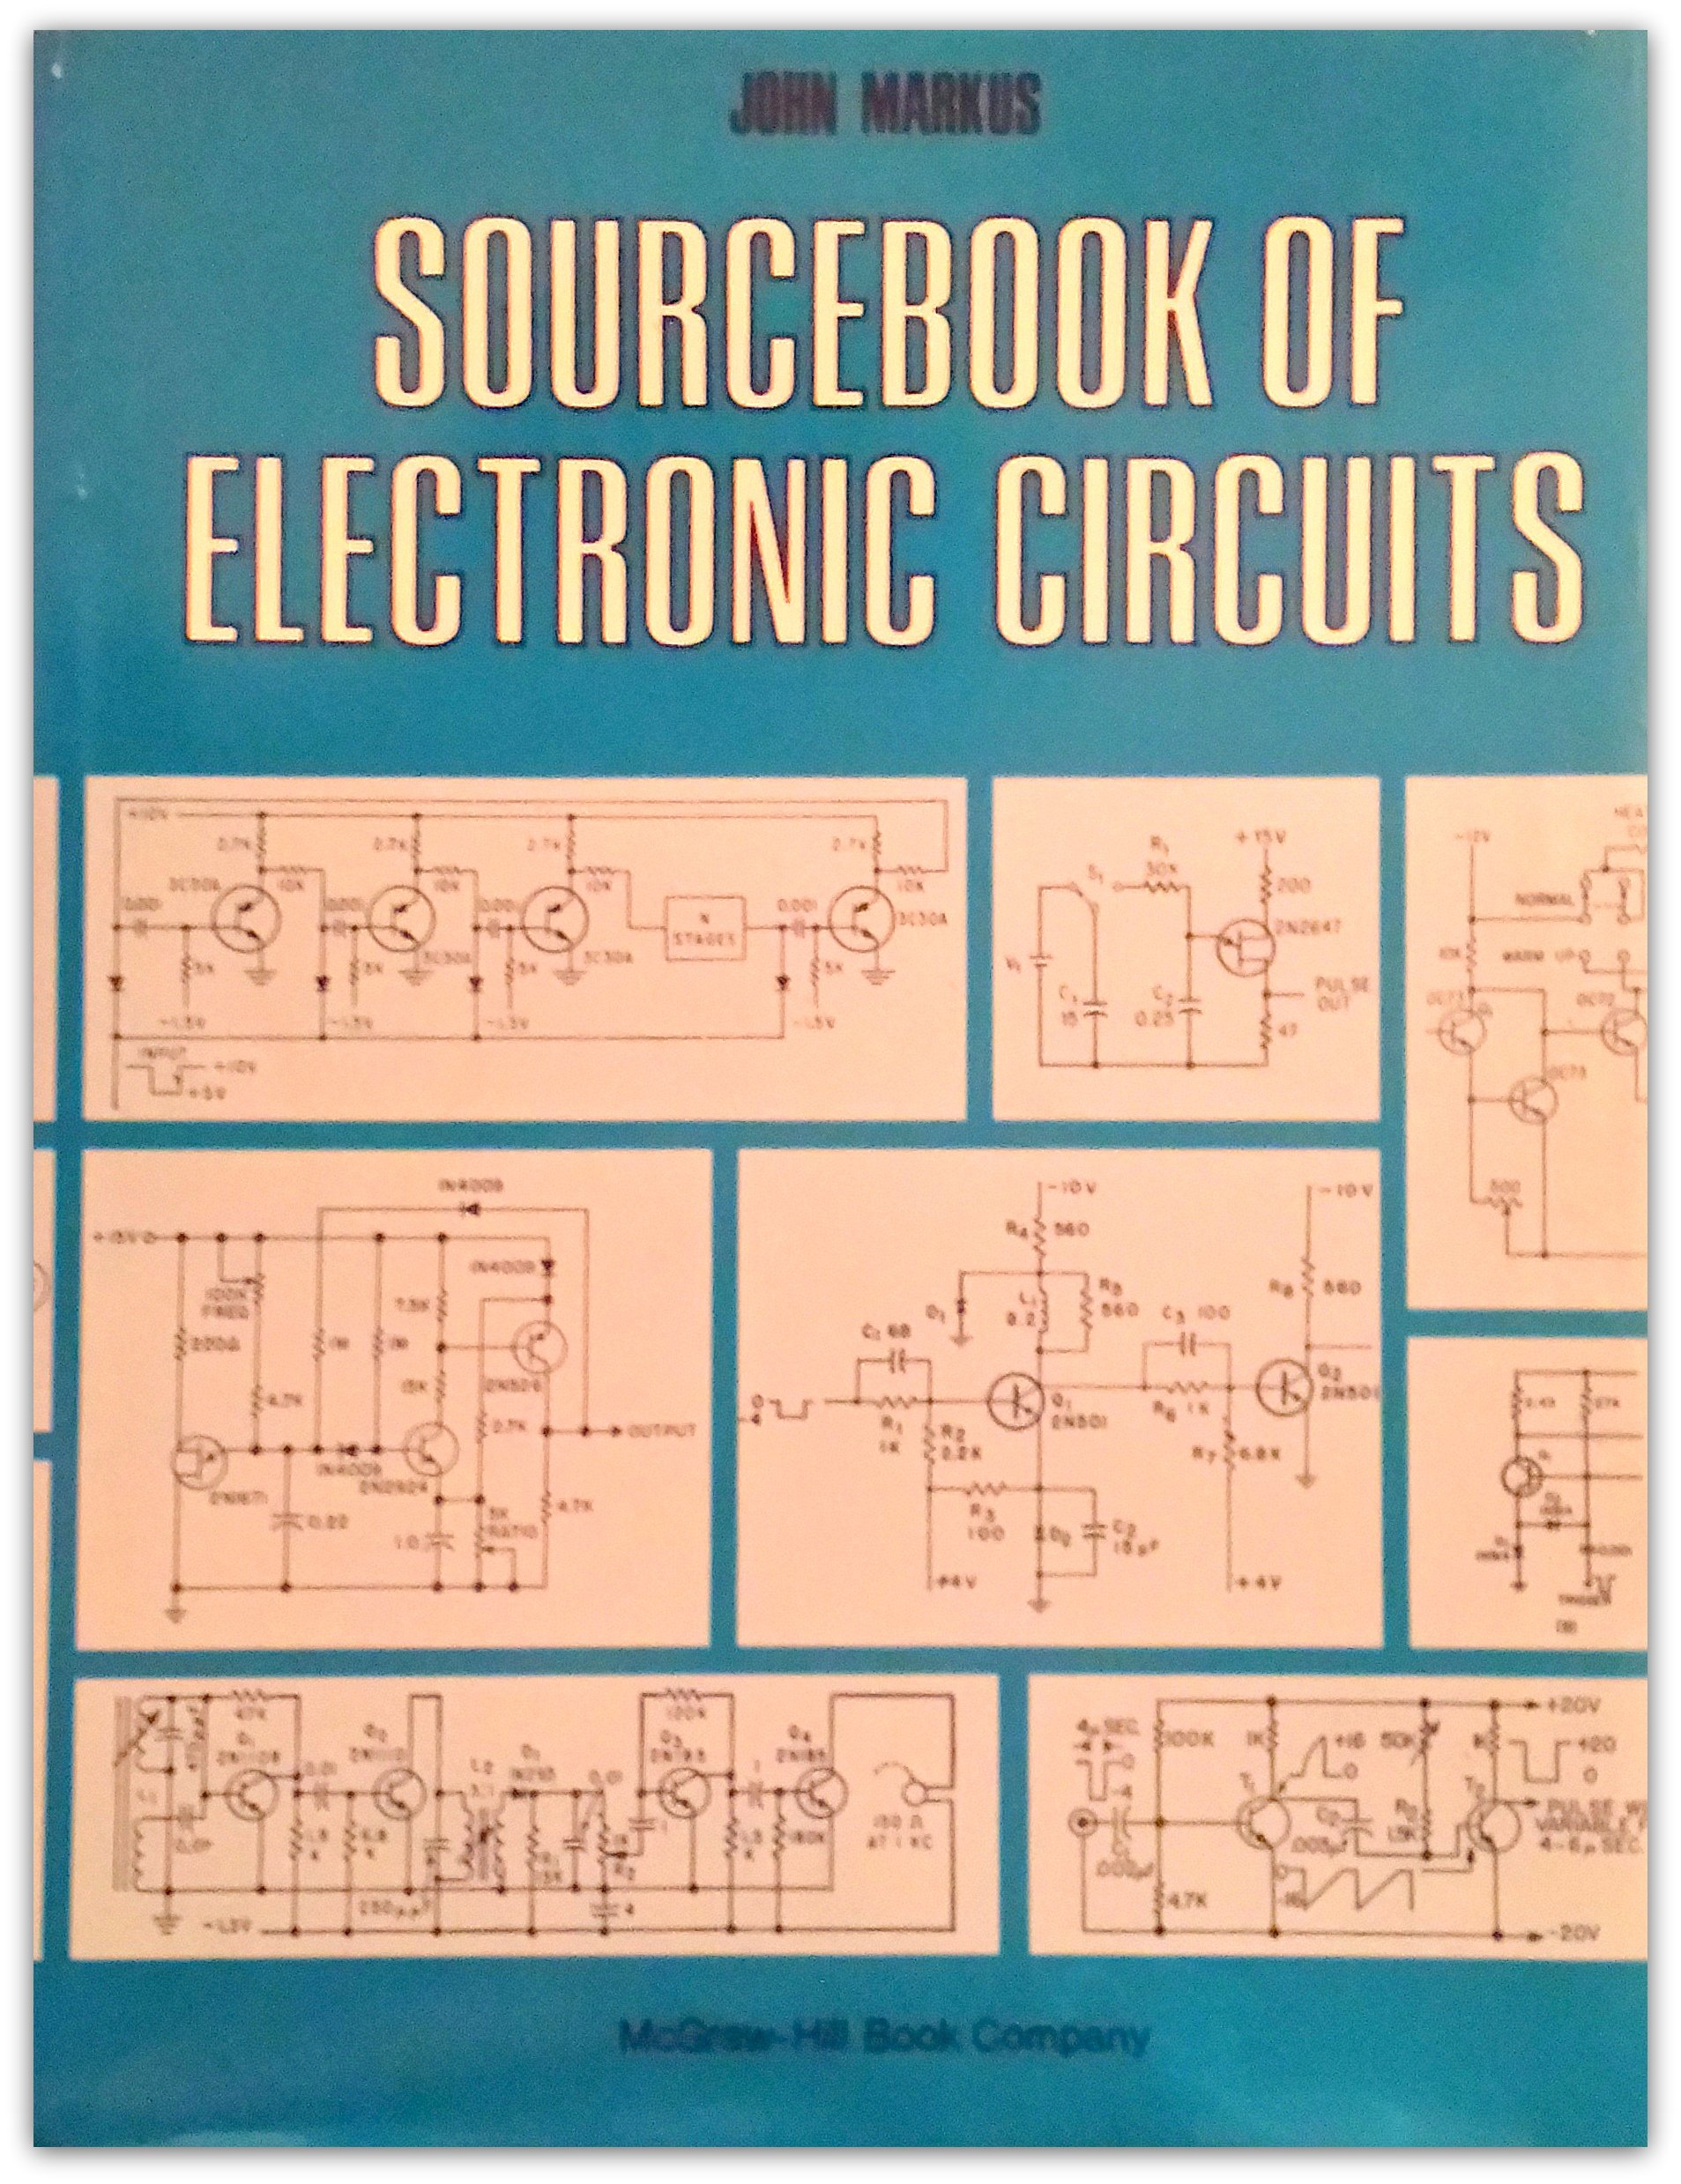 Sourcebook of Electronic Circuits: John Markus